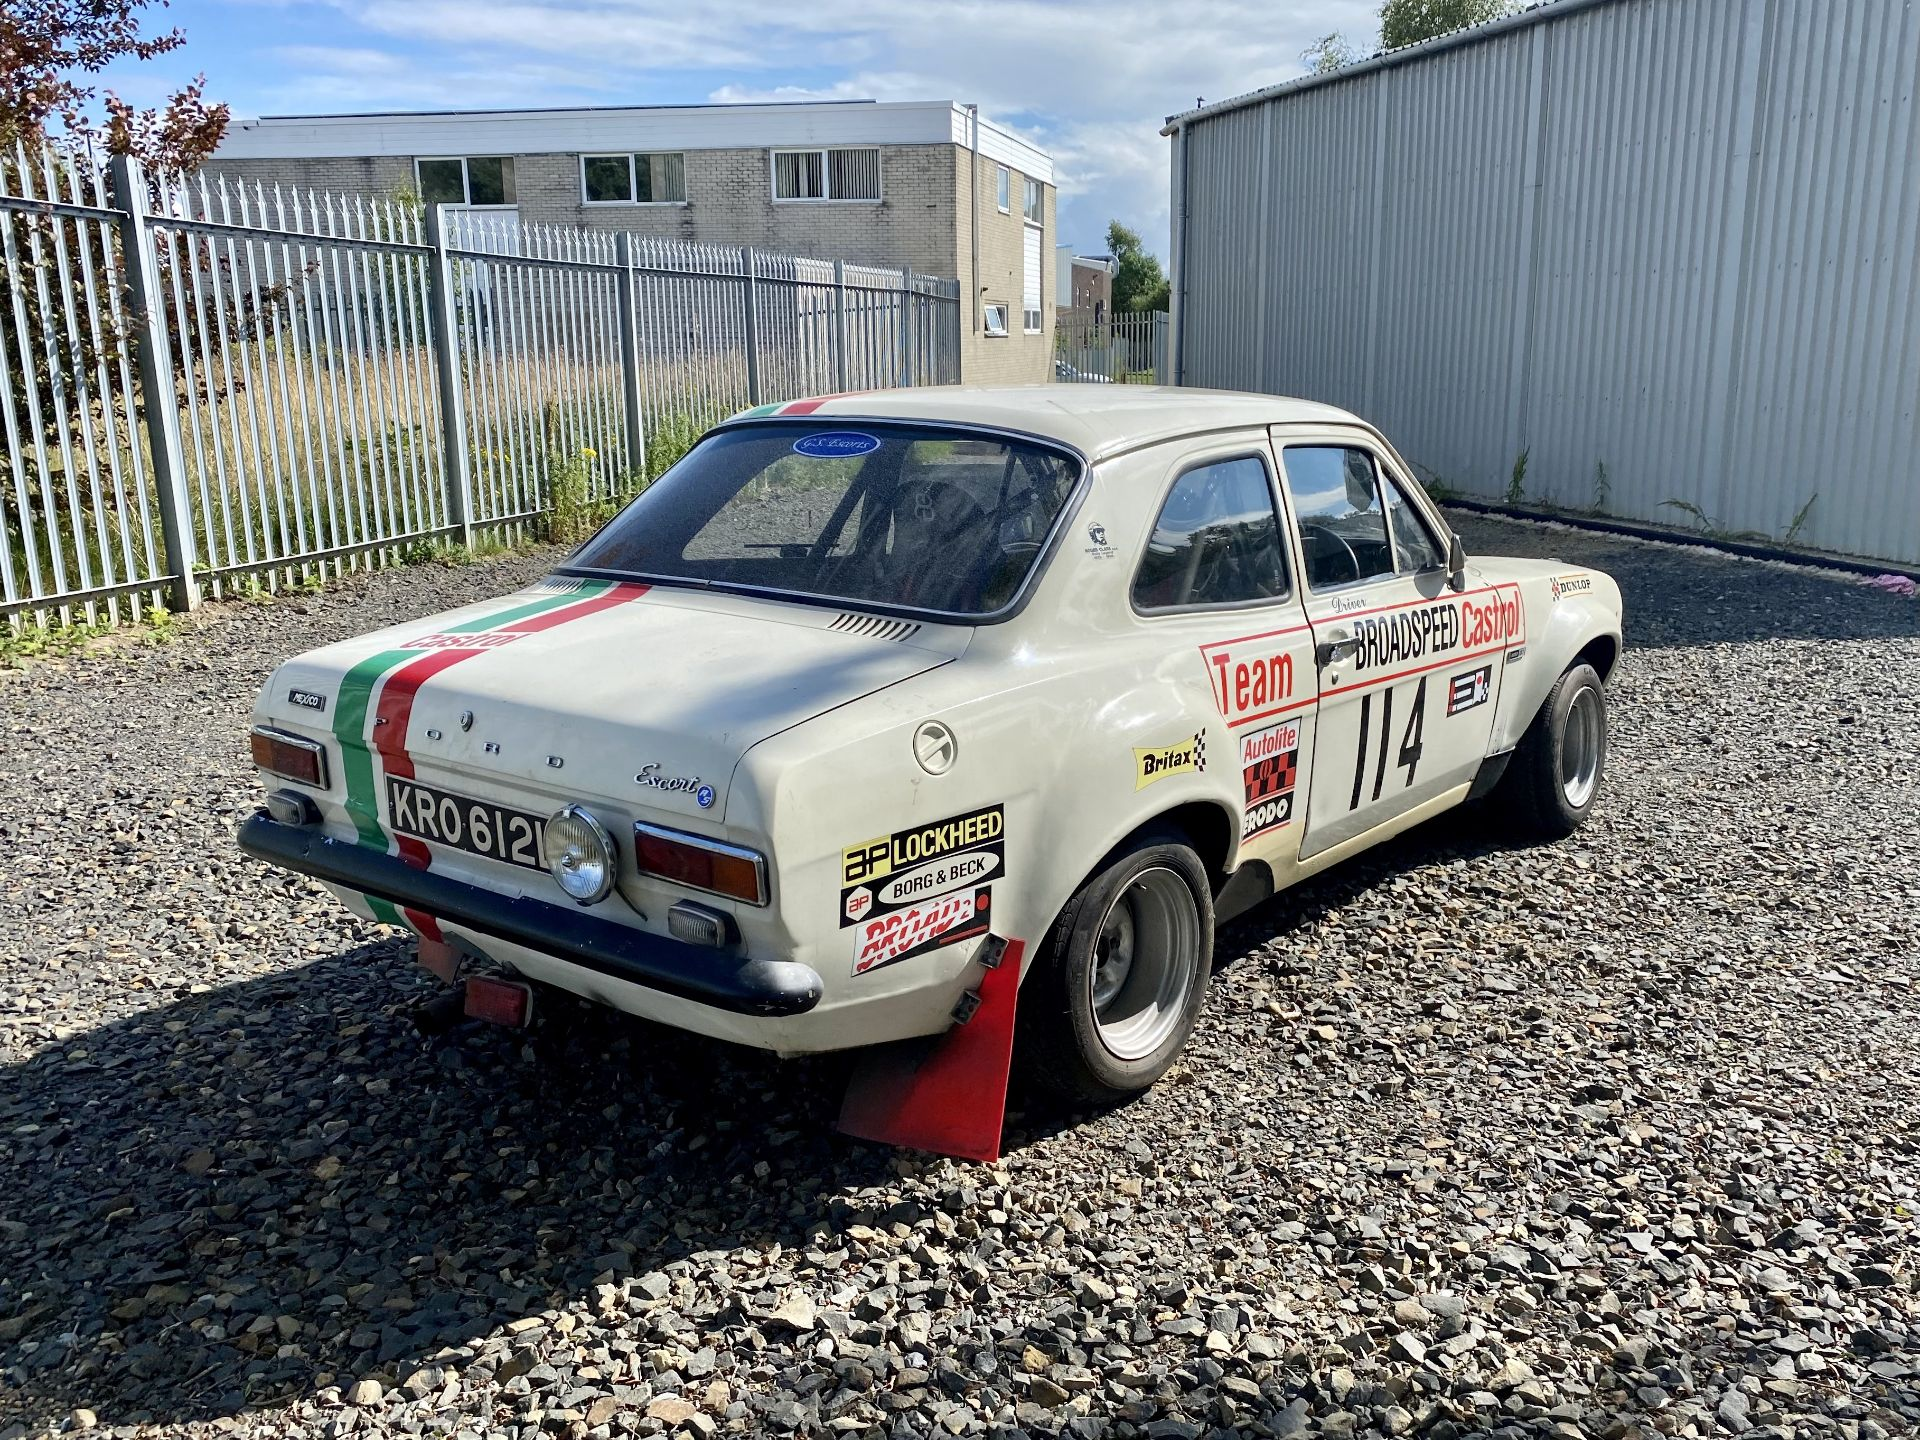 Ford Escort Mexico - Image 18 of 51